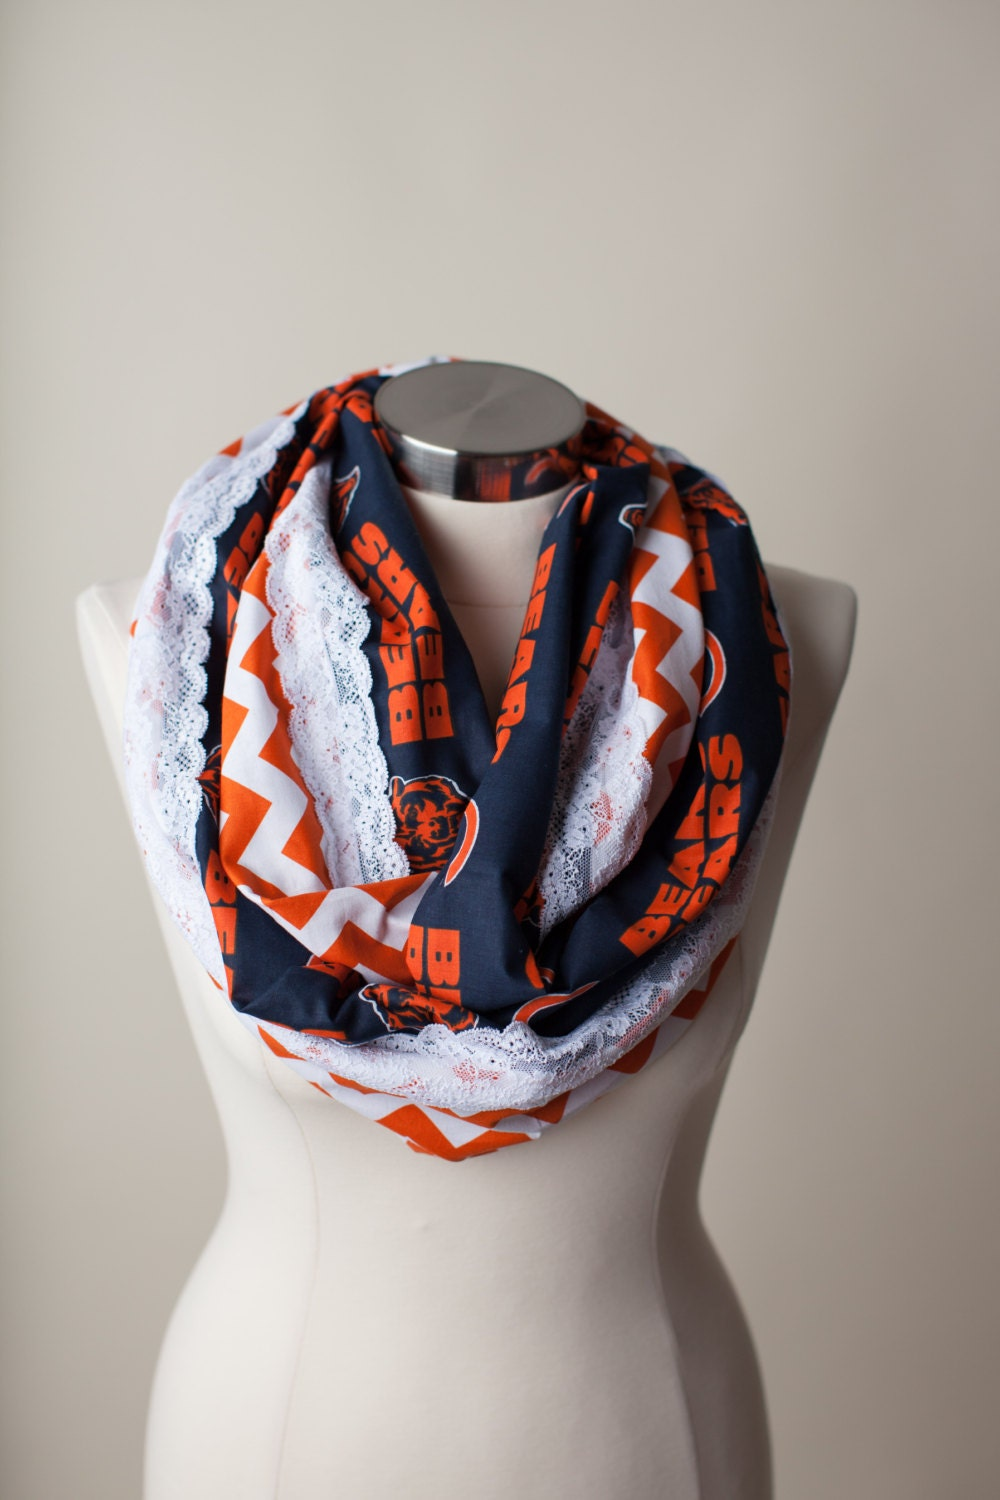 chicago bears nfl infinity scarf by thriftygirldesign on etsy